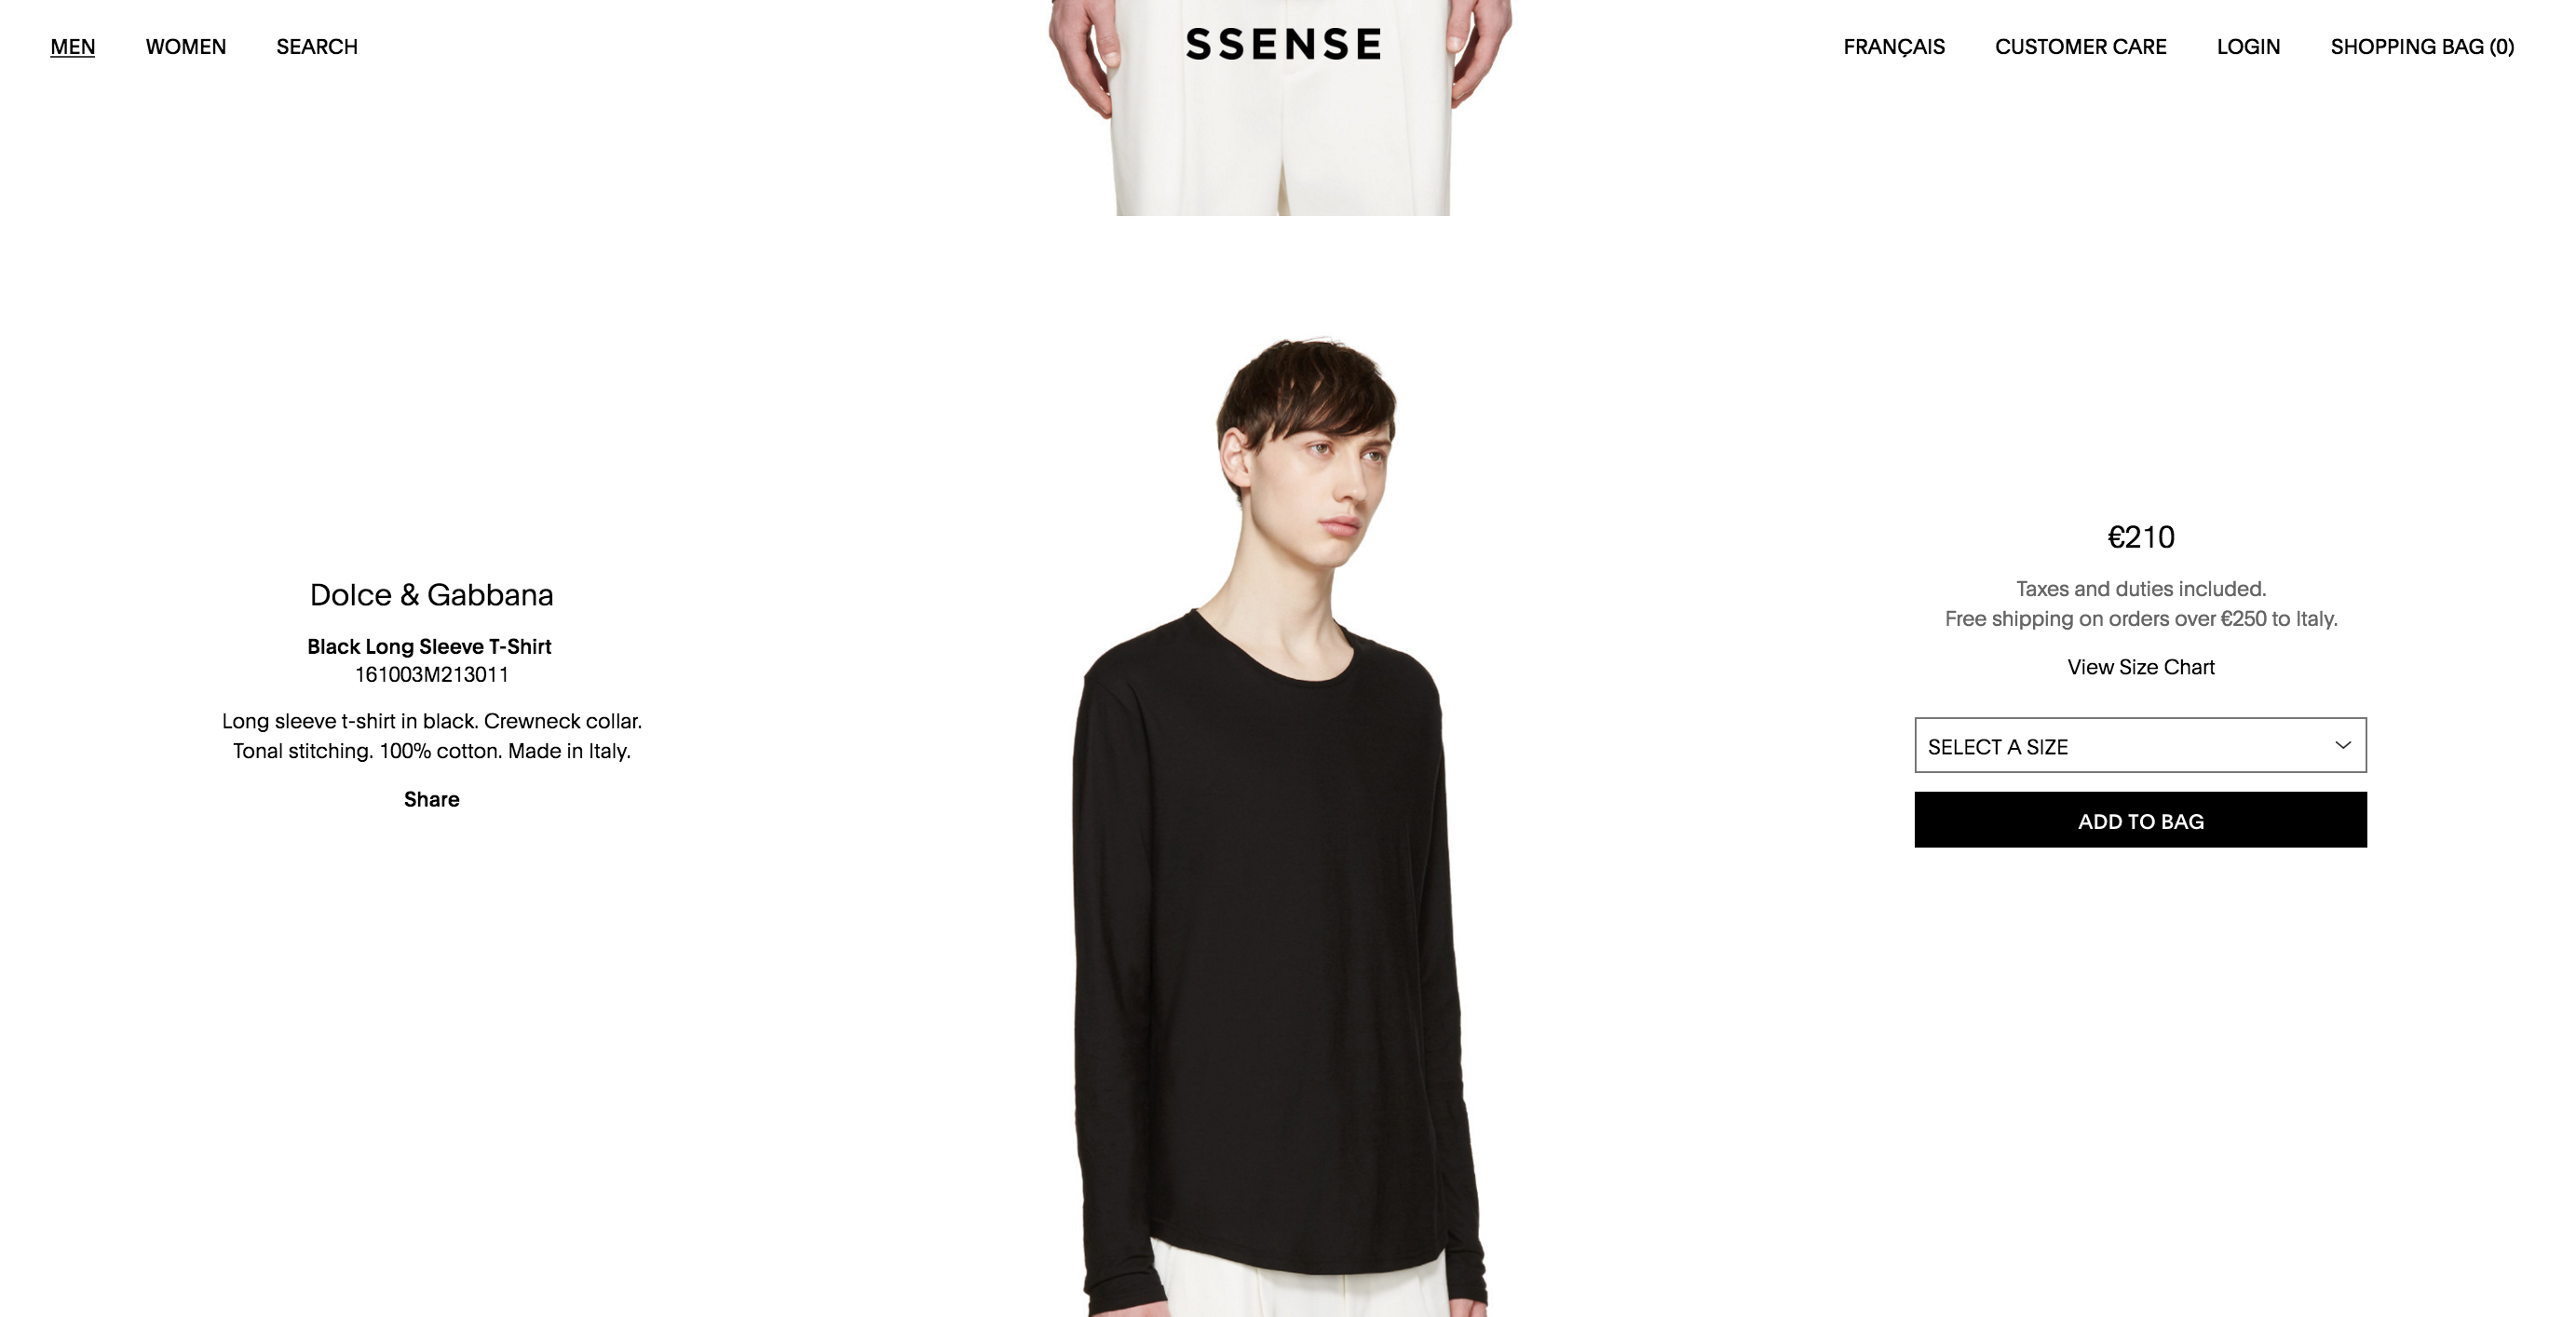 ssense-com-product-page